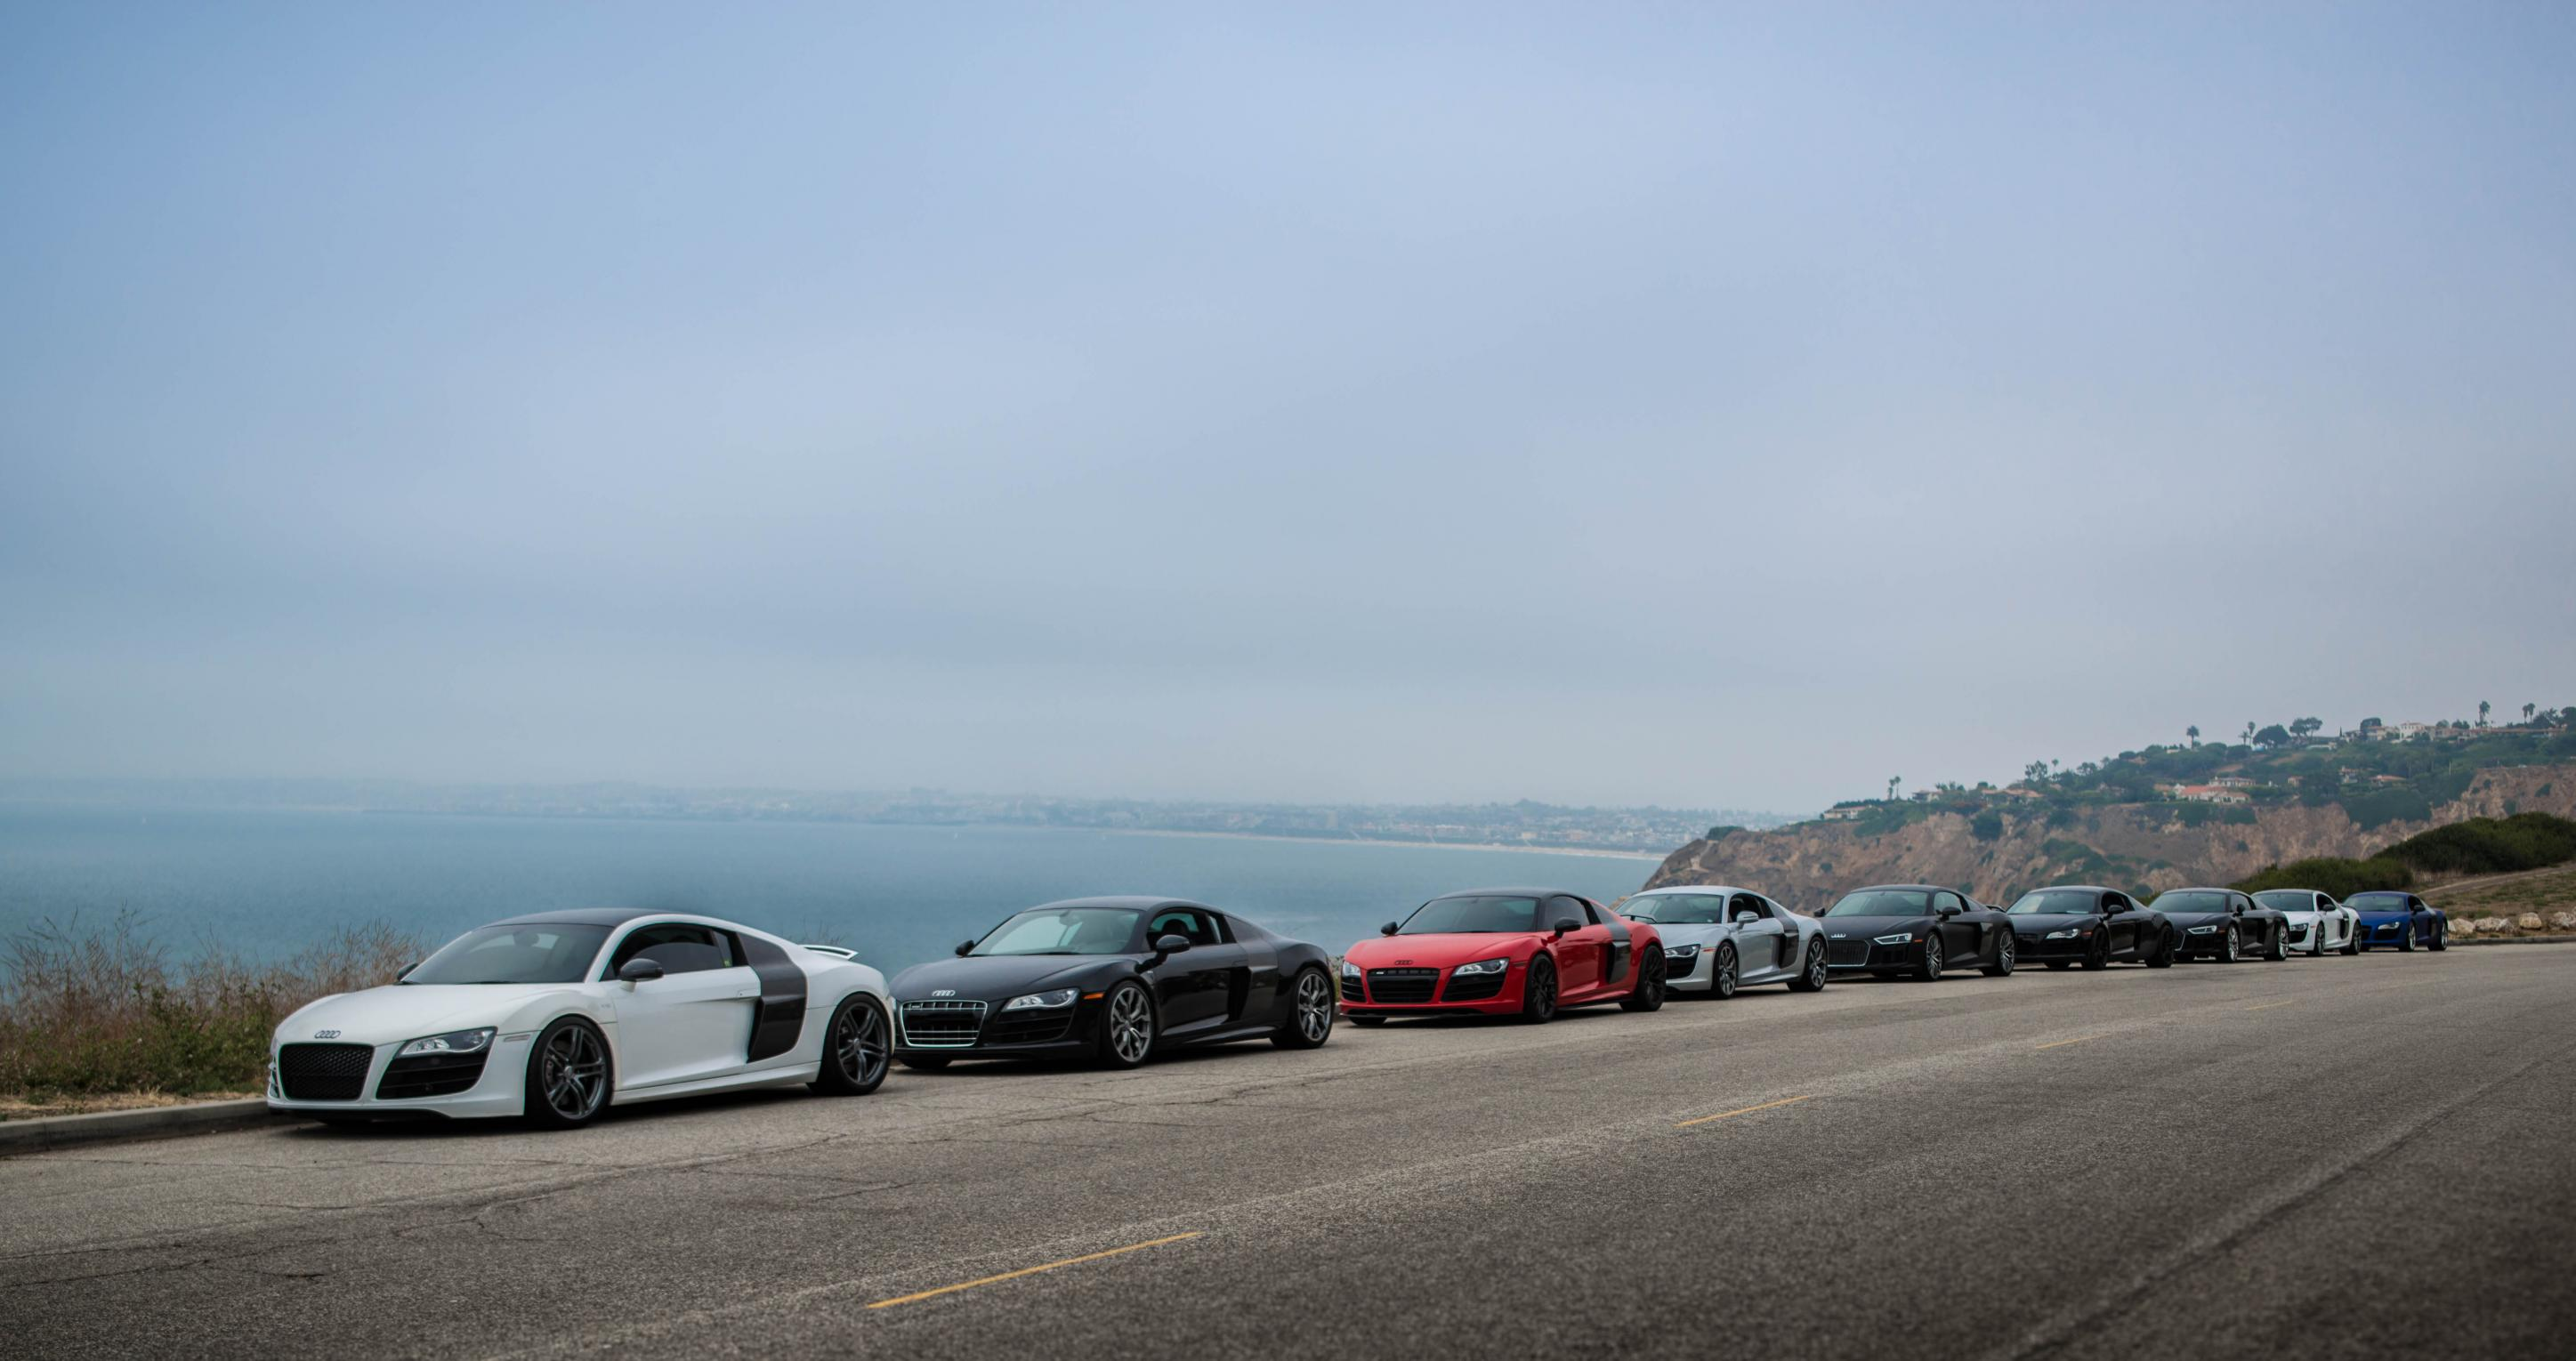 SoCal R8s - Drive from Newport to Redondo Beach on Sunday, July 14th-_dsc4735.jpg